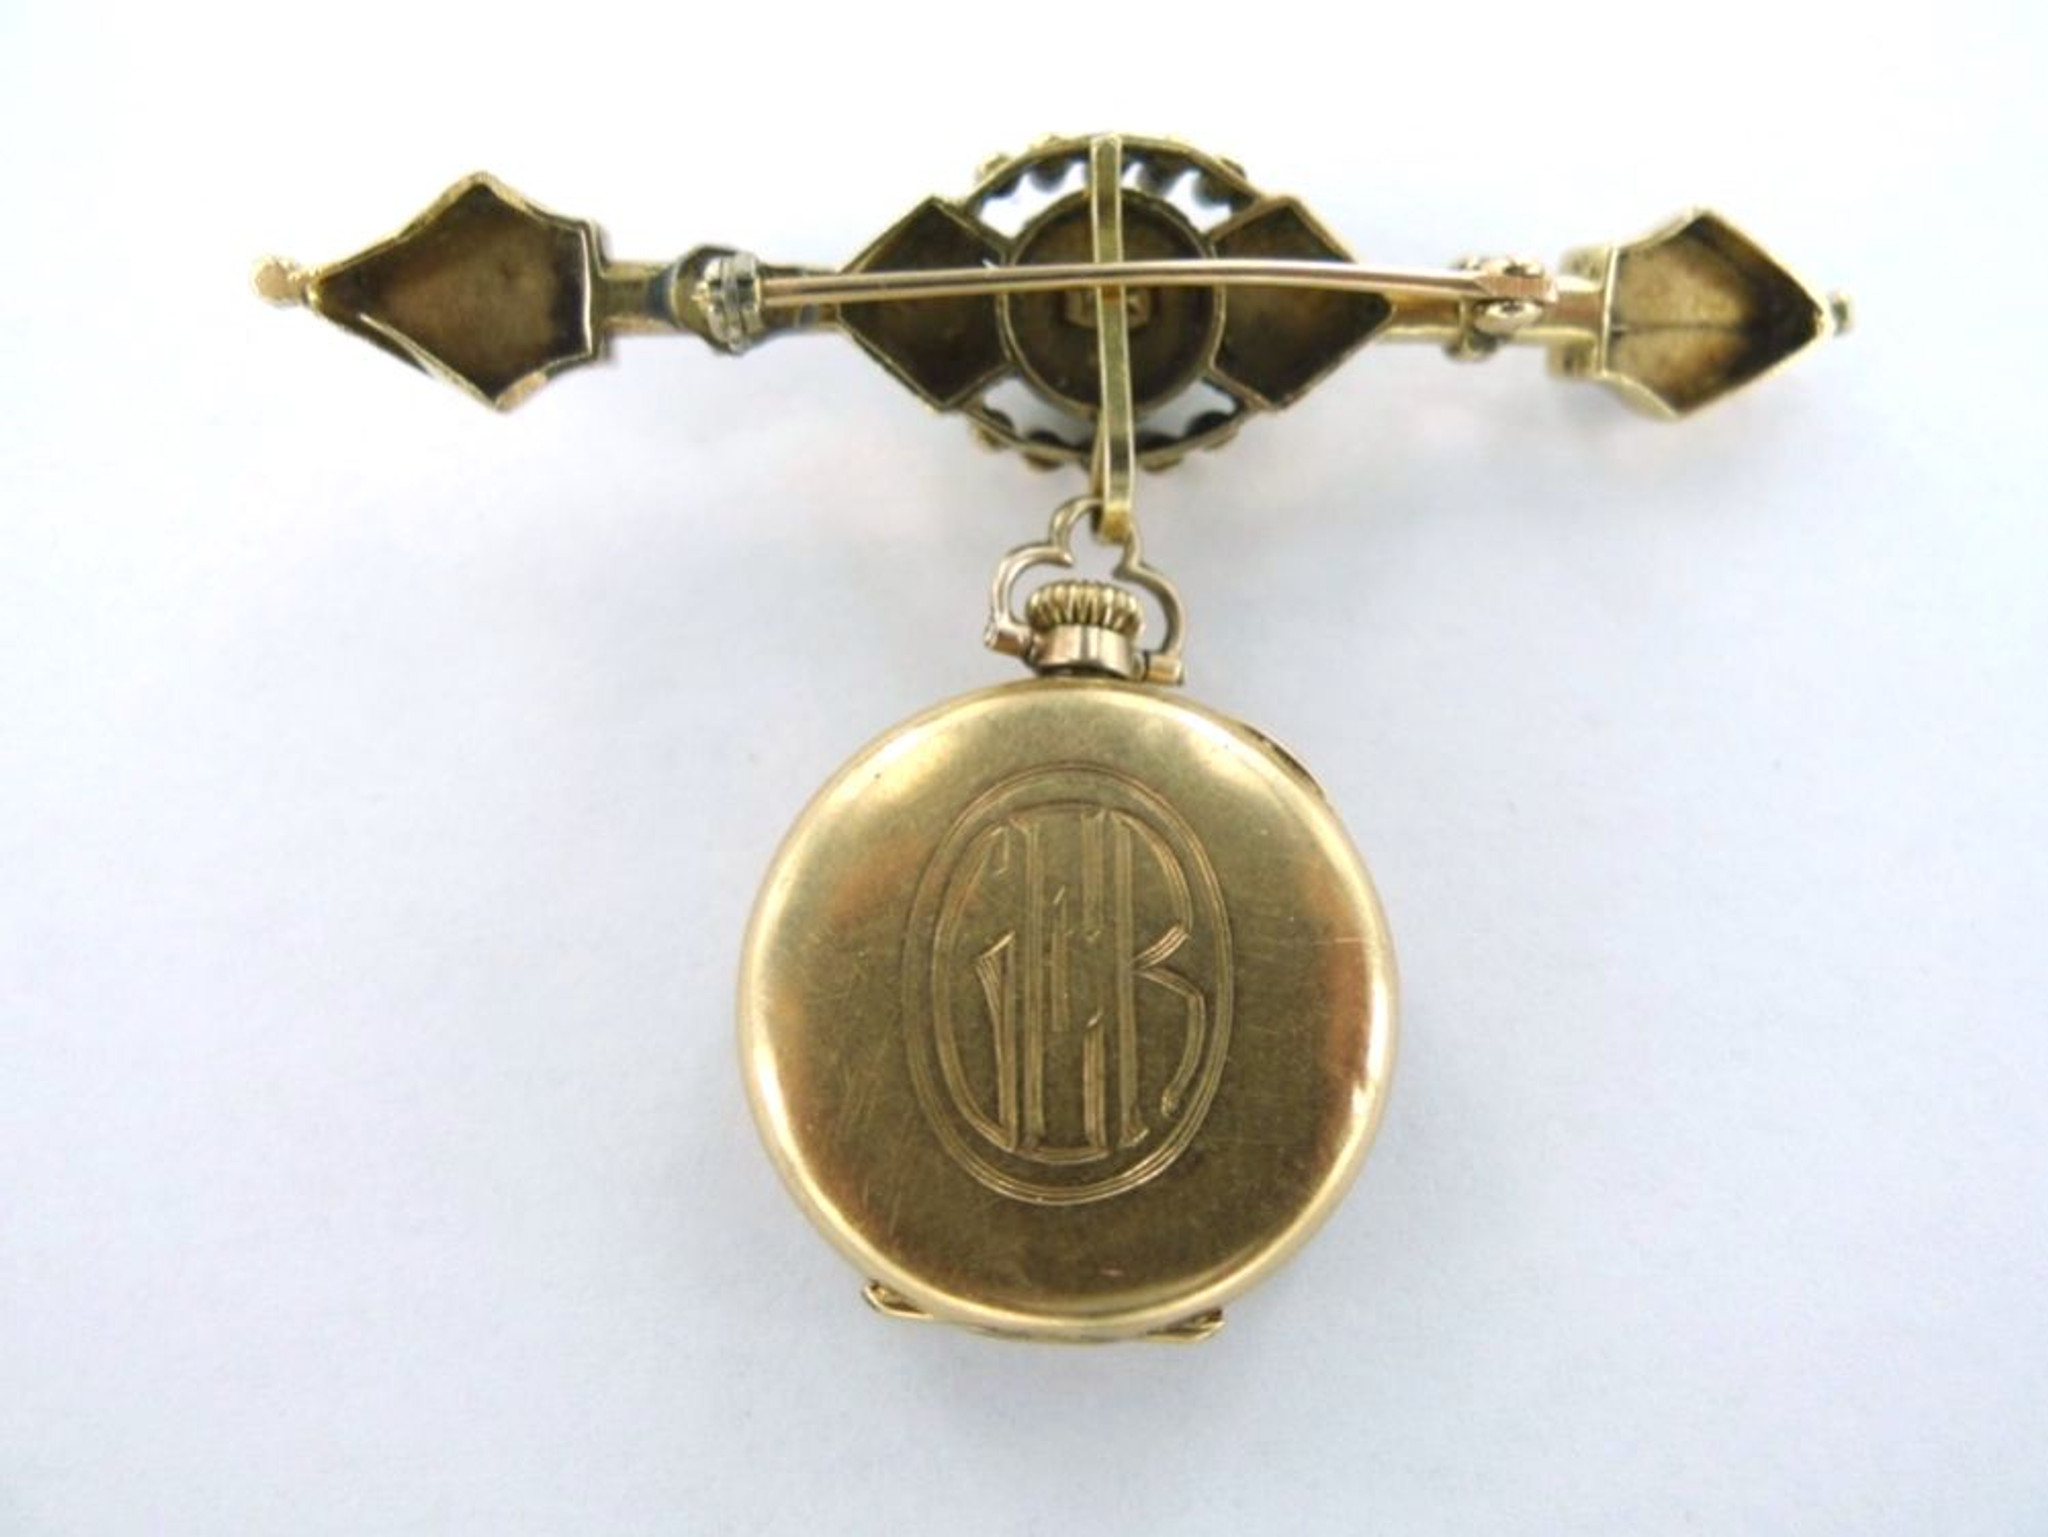 e7202885b Stunning early 1900s 14k gold & pearl ladies brooch watch in working ...